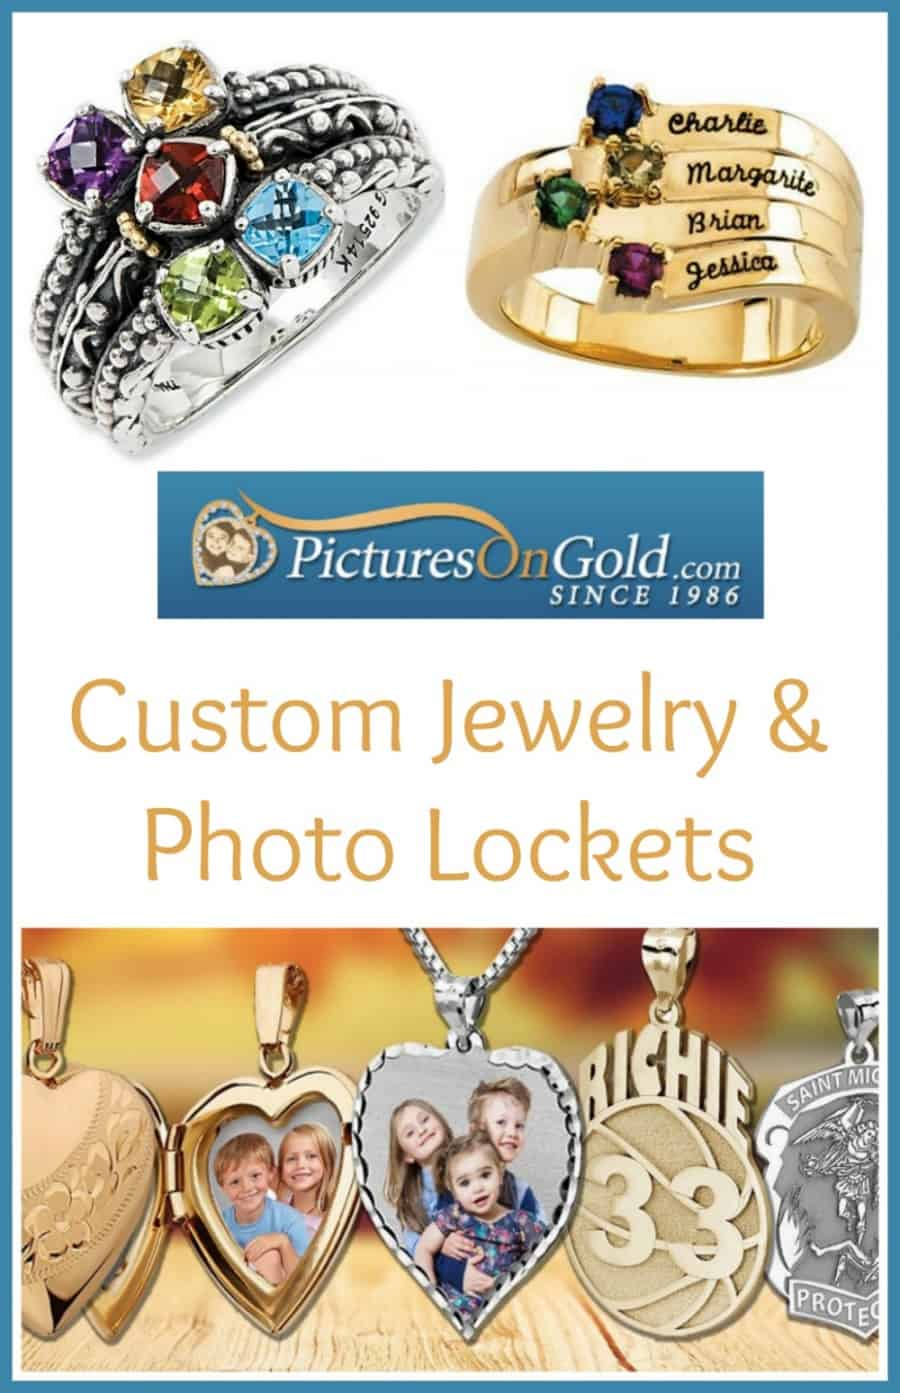 Unique PicturesOnGold.com Custom Jewelry For Mom